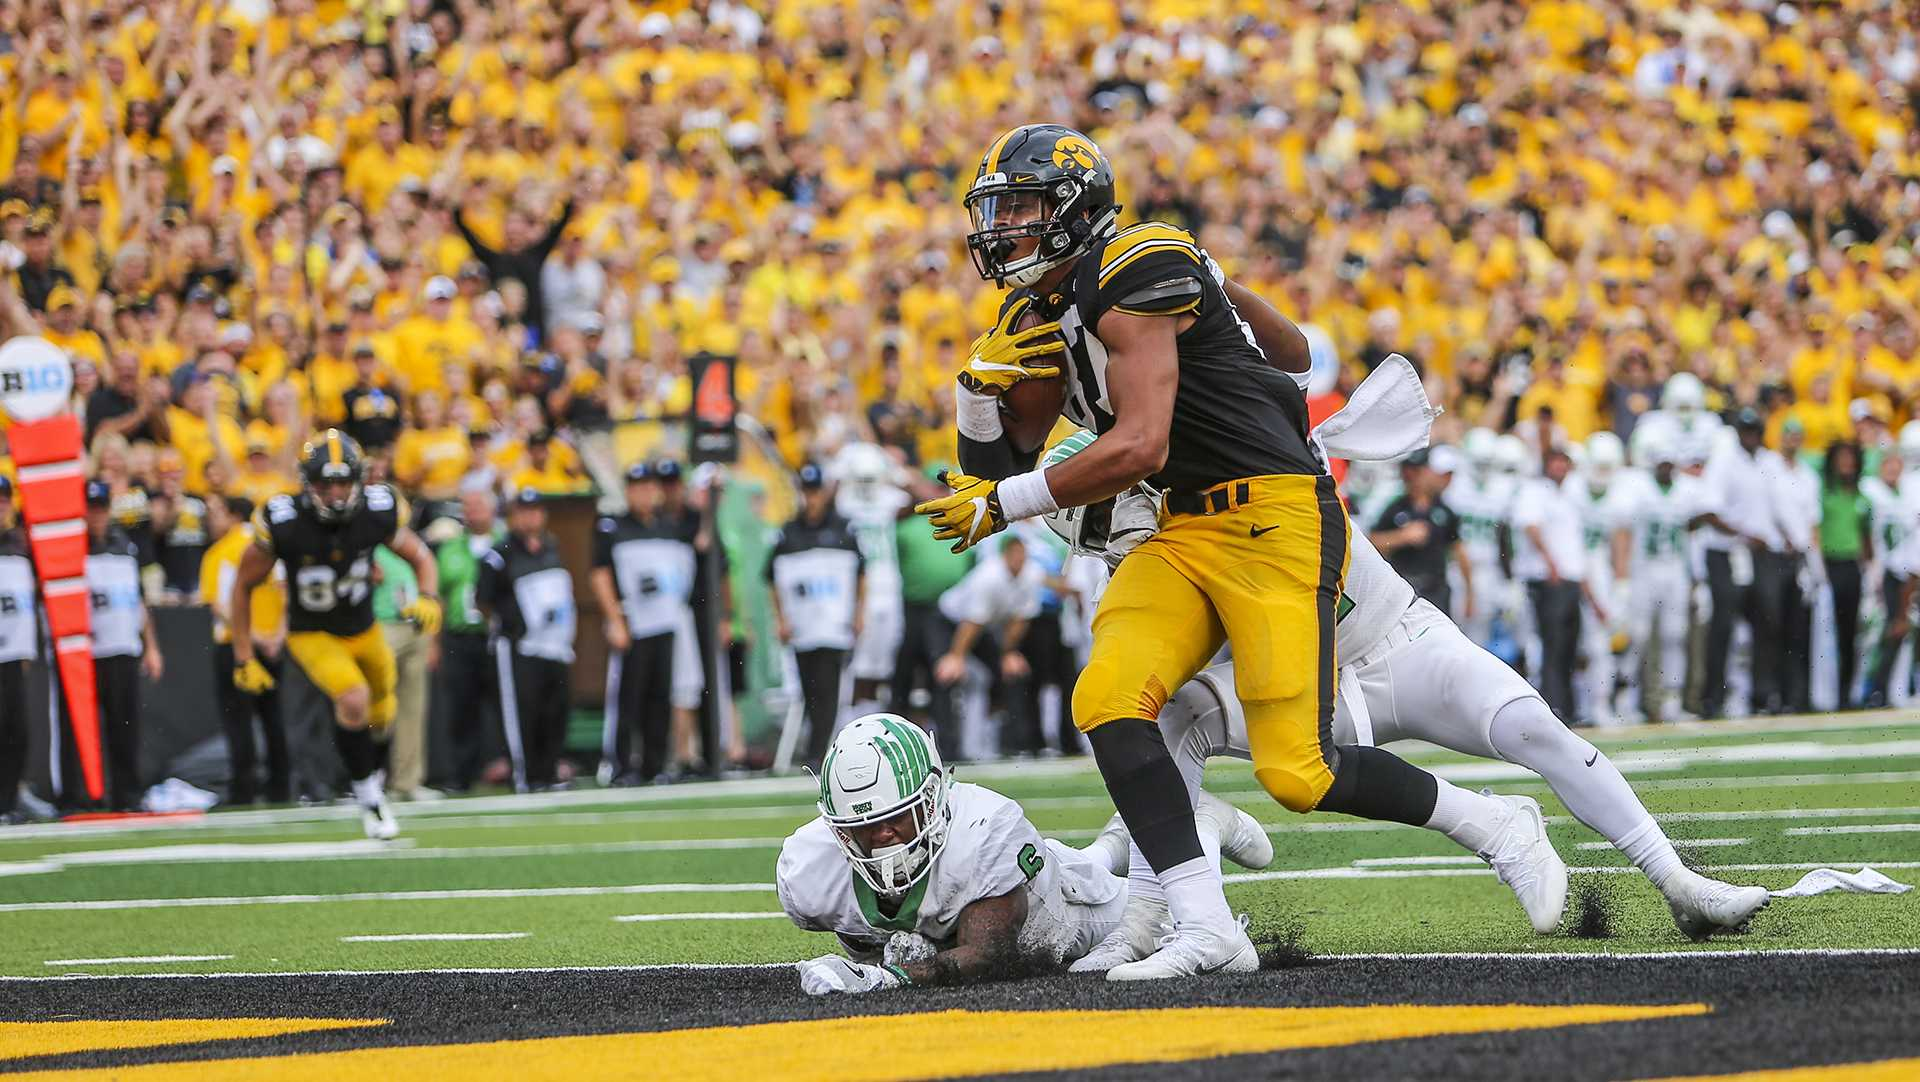 Iowa's Noah Fant scores a touchdown during the game between Iowa and North Texas at Kinnick Stadium on Saturday Sept. 16, 2017. Iowa won 31-14. (Nick Rohlman/The Daily Iowan)